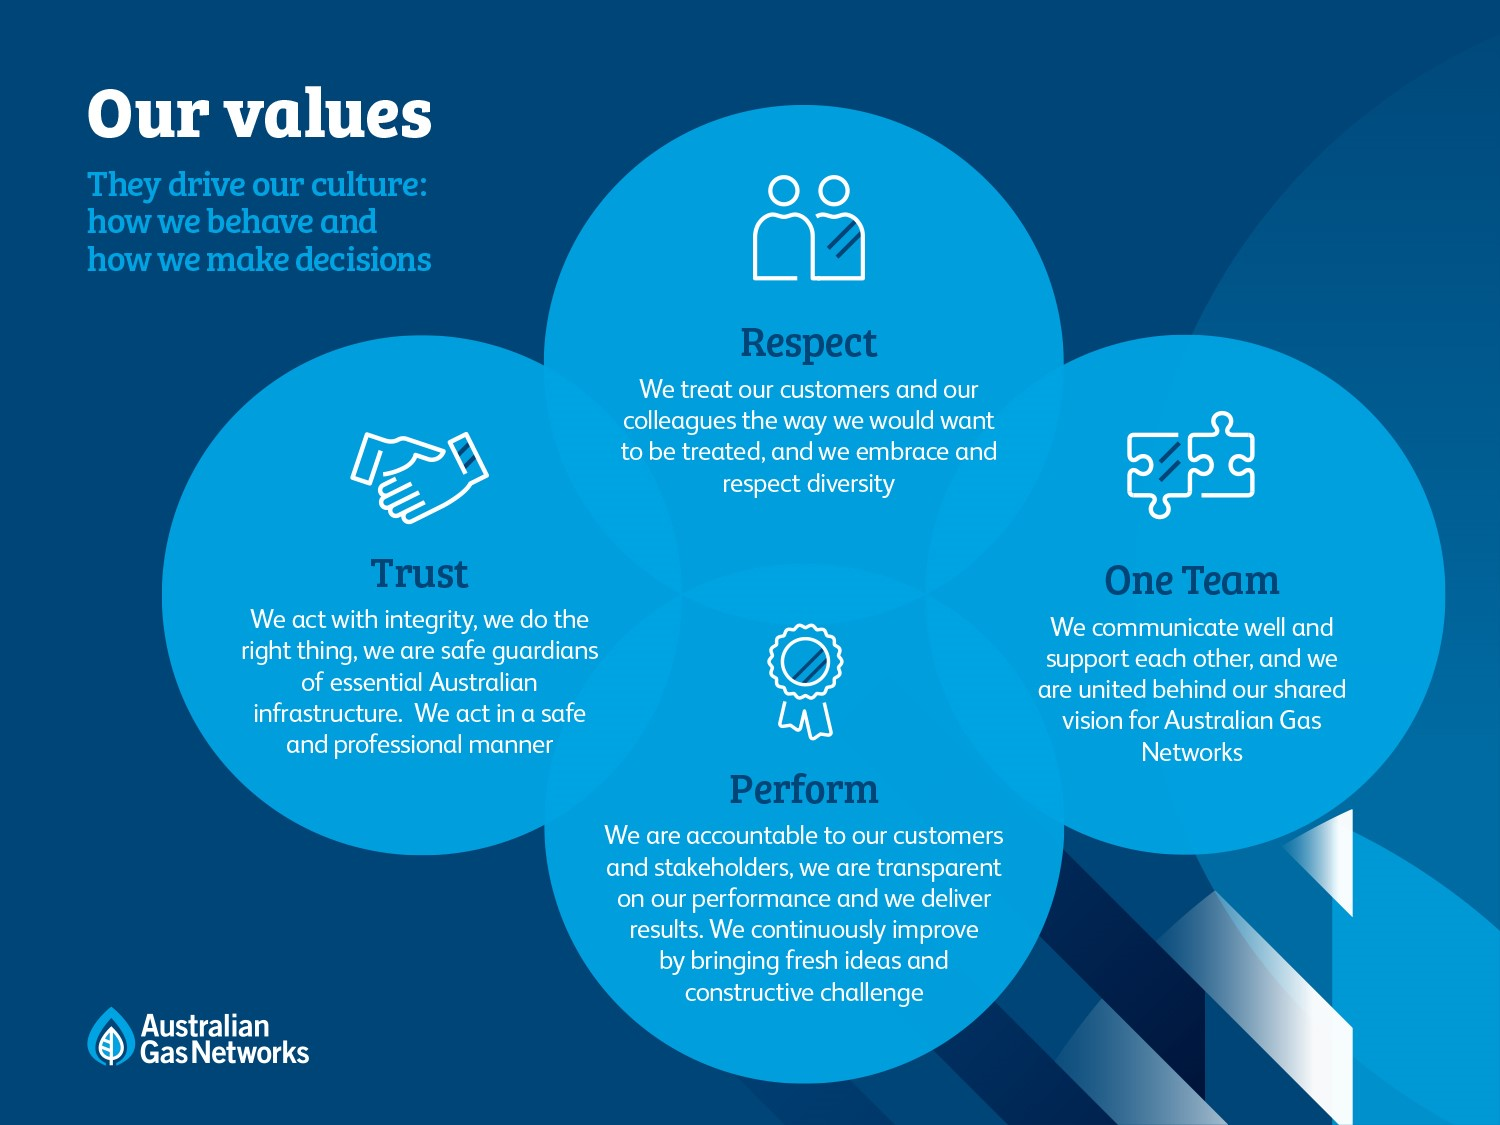 Our values: trust, respect, one team, perform